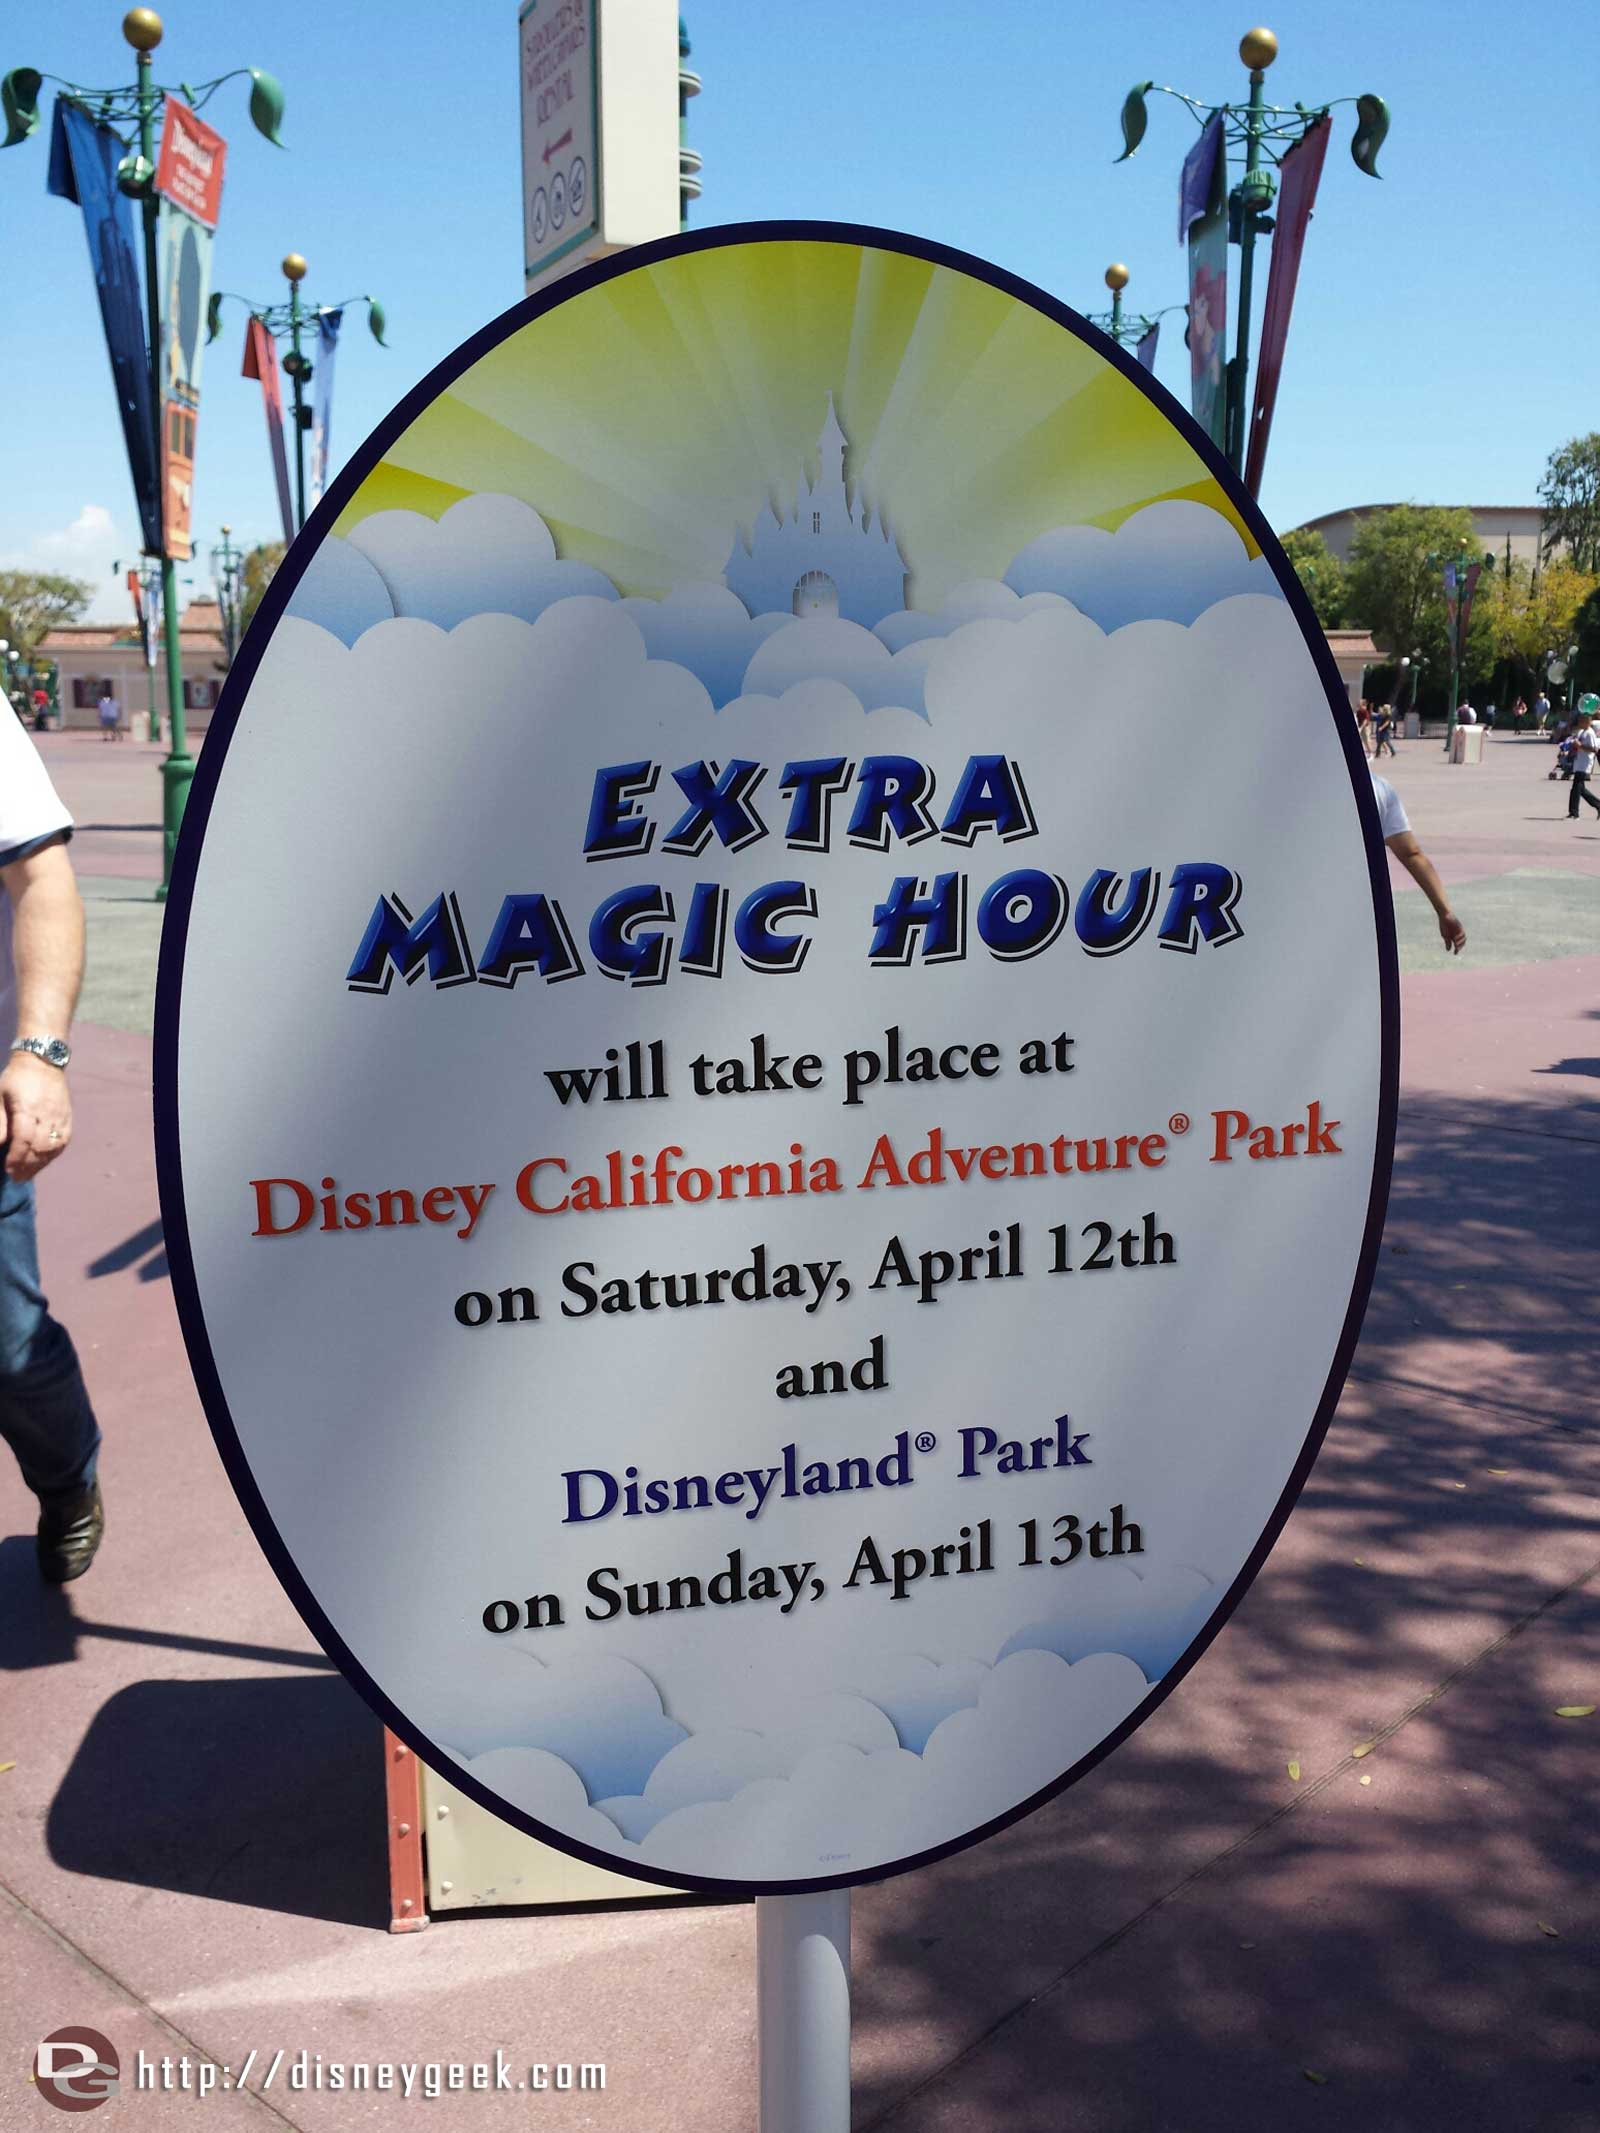 If you are staying at a Disneyland hotel this weekend there is a change to the Extra Magic Hour schedule